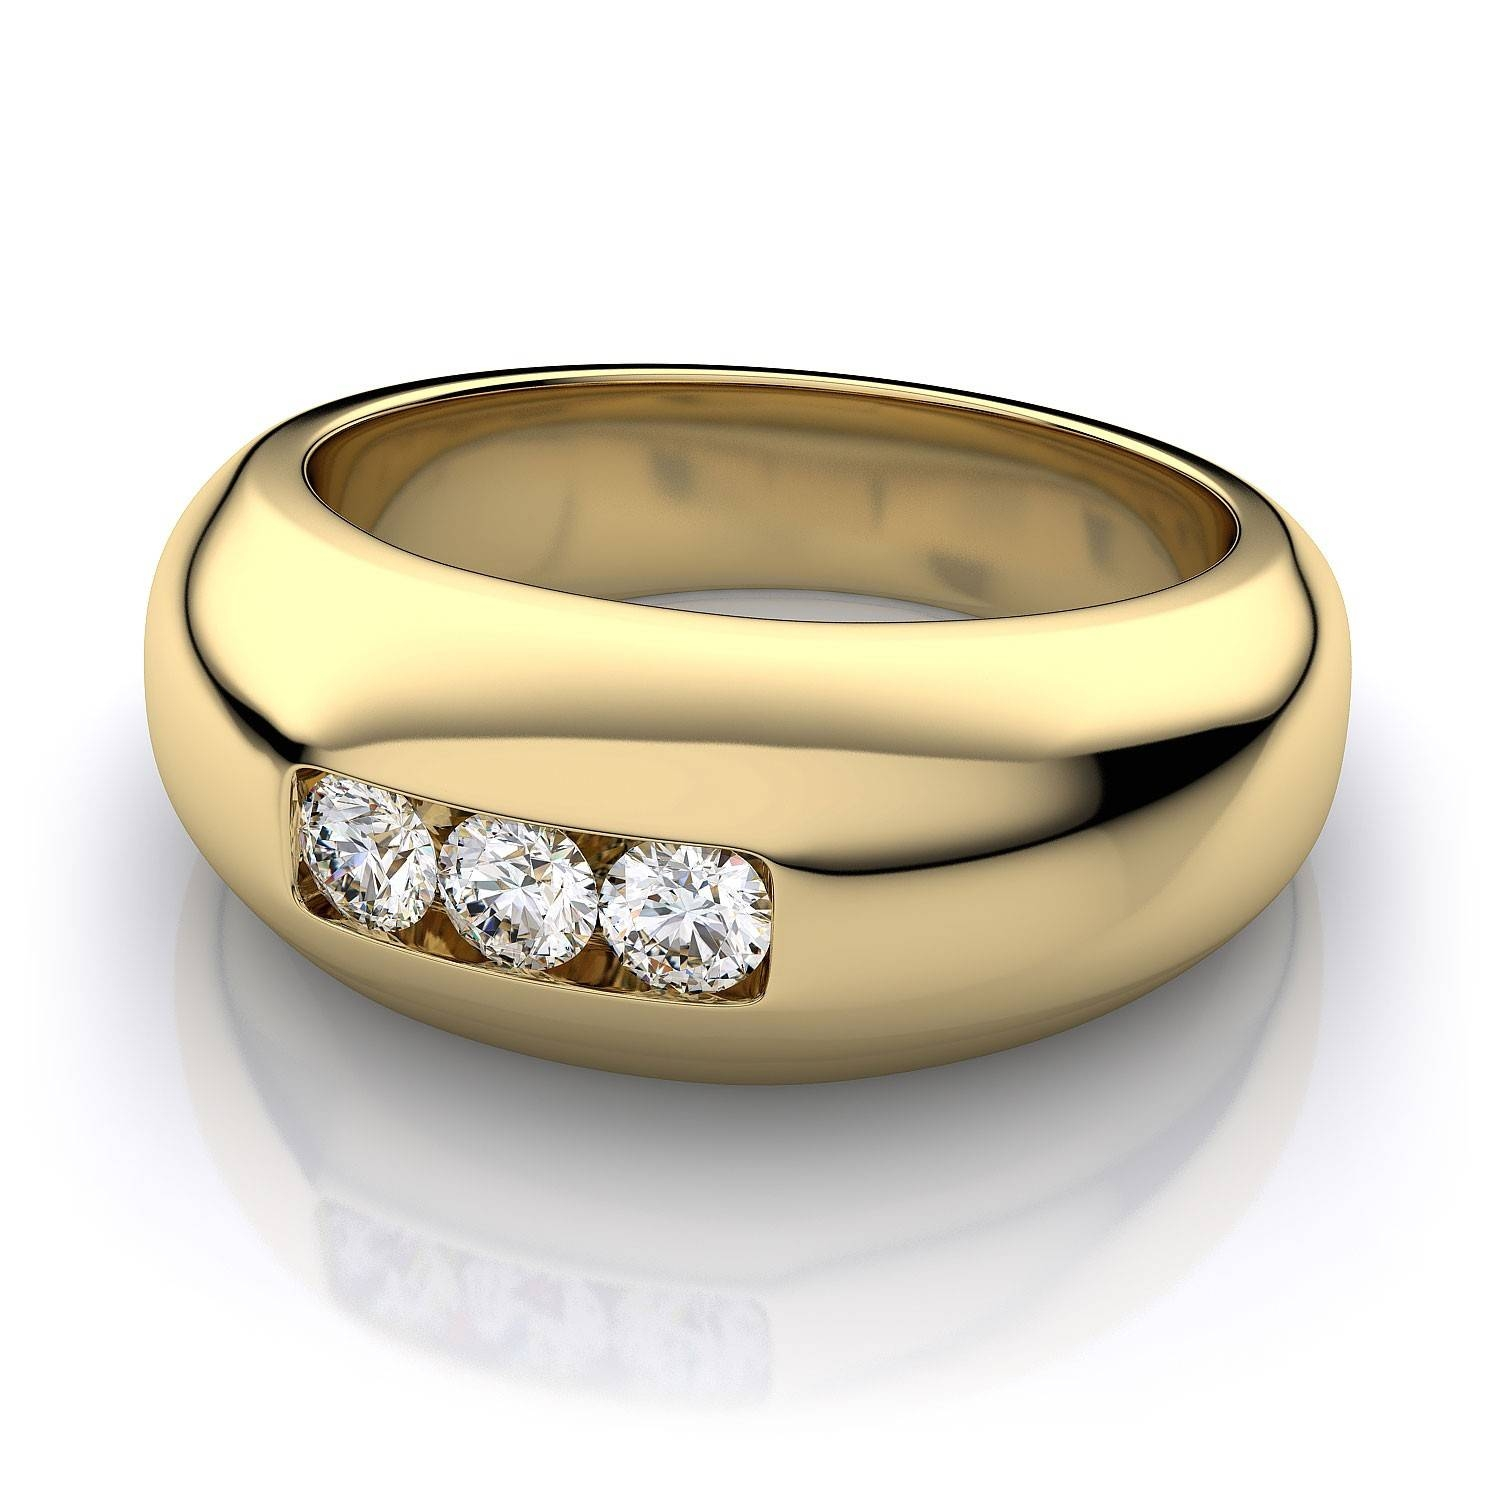 8.8Mm Channel Set Men's Round Diamond Wedding Ring In 14K Yellow Gold Regarding Most Recent Yellow Gold Channel Set Wedding Bands (Gallery 9 of 15)